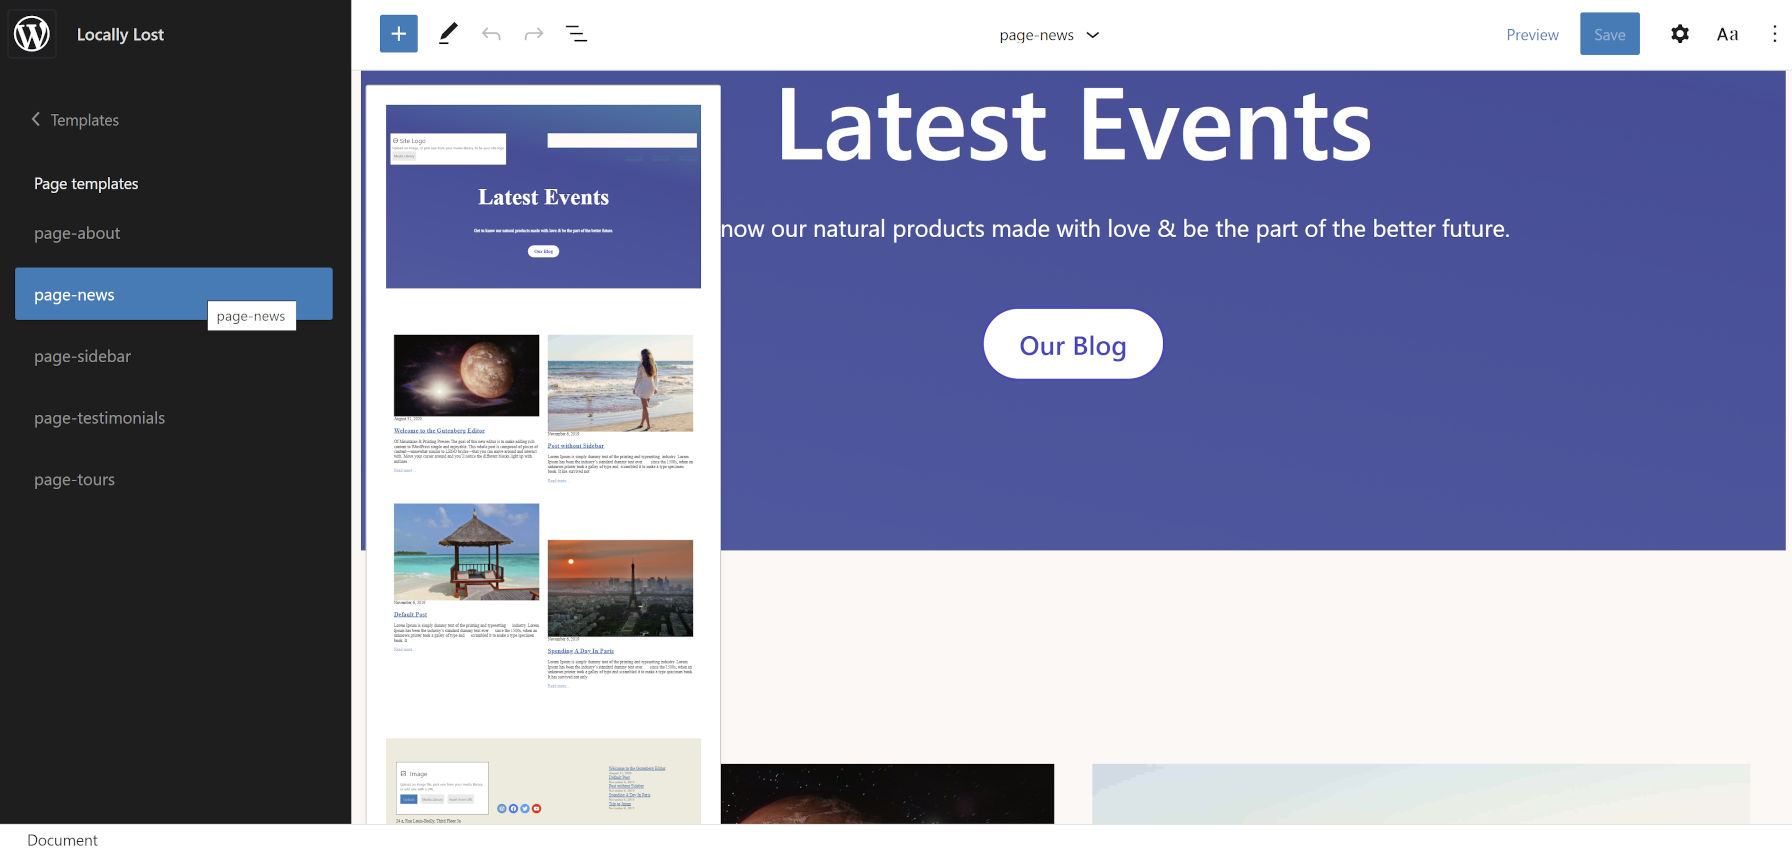 Editing the News template in the WordPress site editor from the Naledi theme.